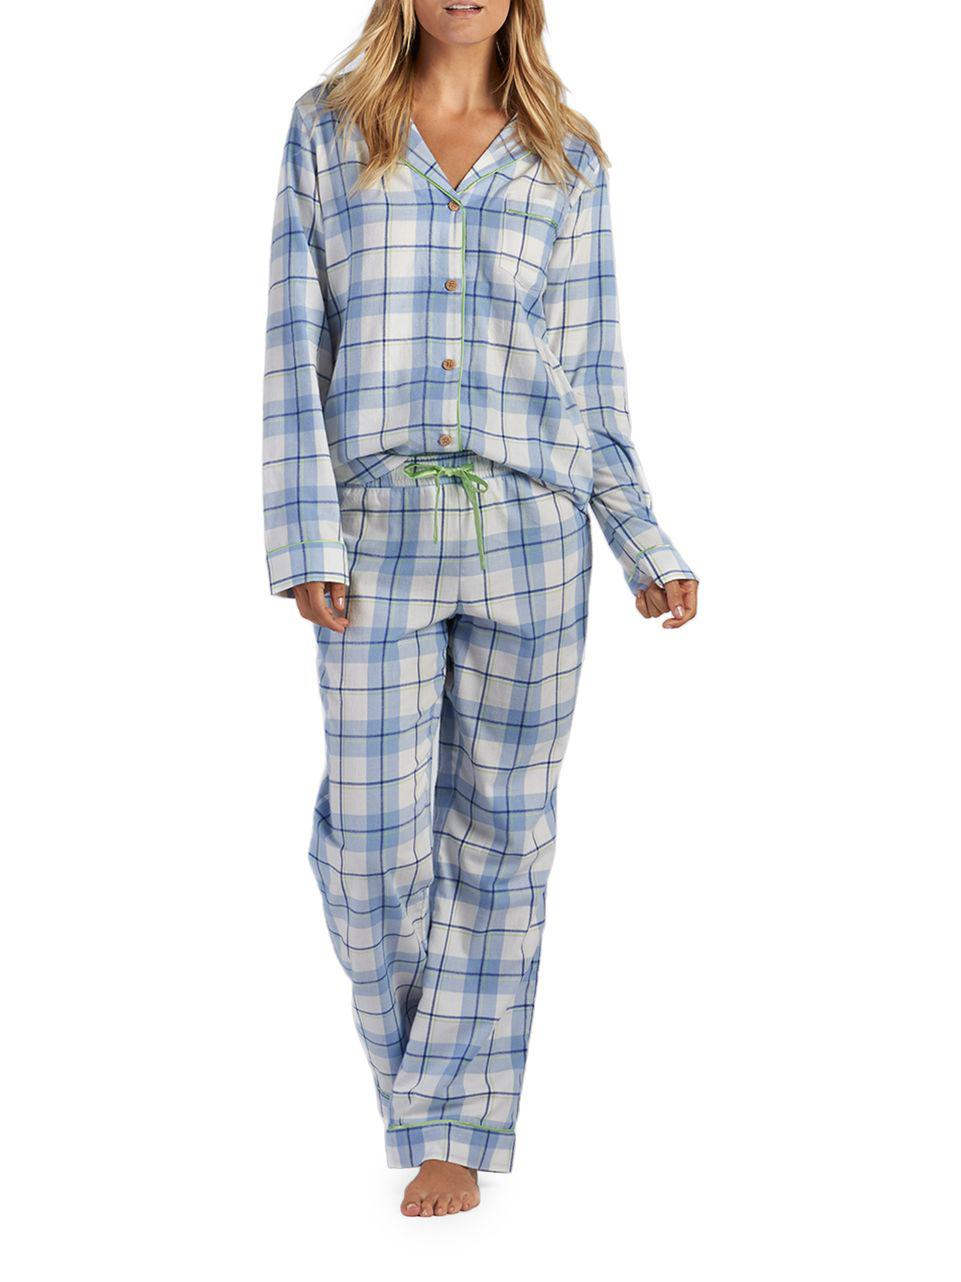 59dc7ec413 Lyst - Ugg Raven Plaid Two-piece Pajama Pants   Shirt Set in Blue